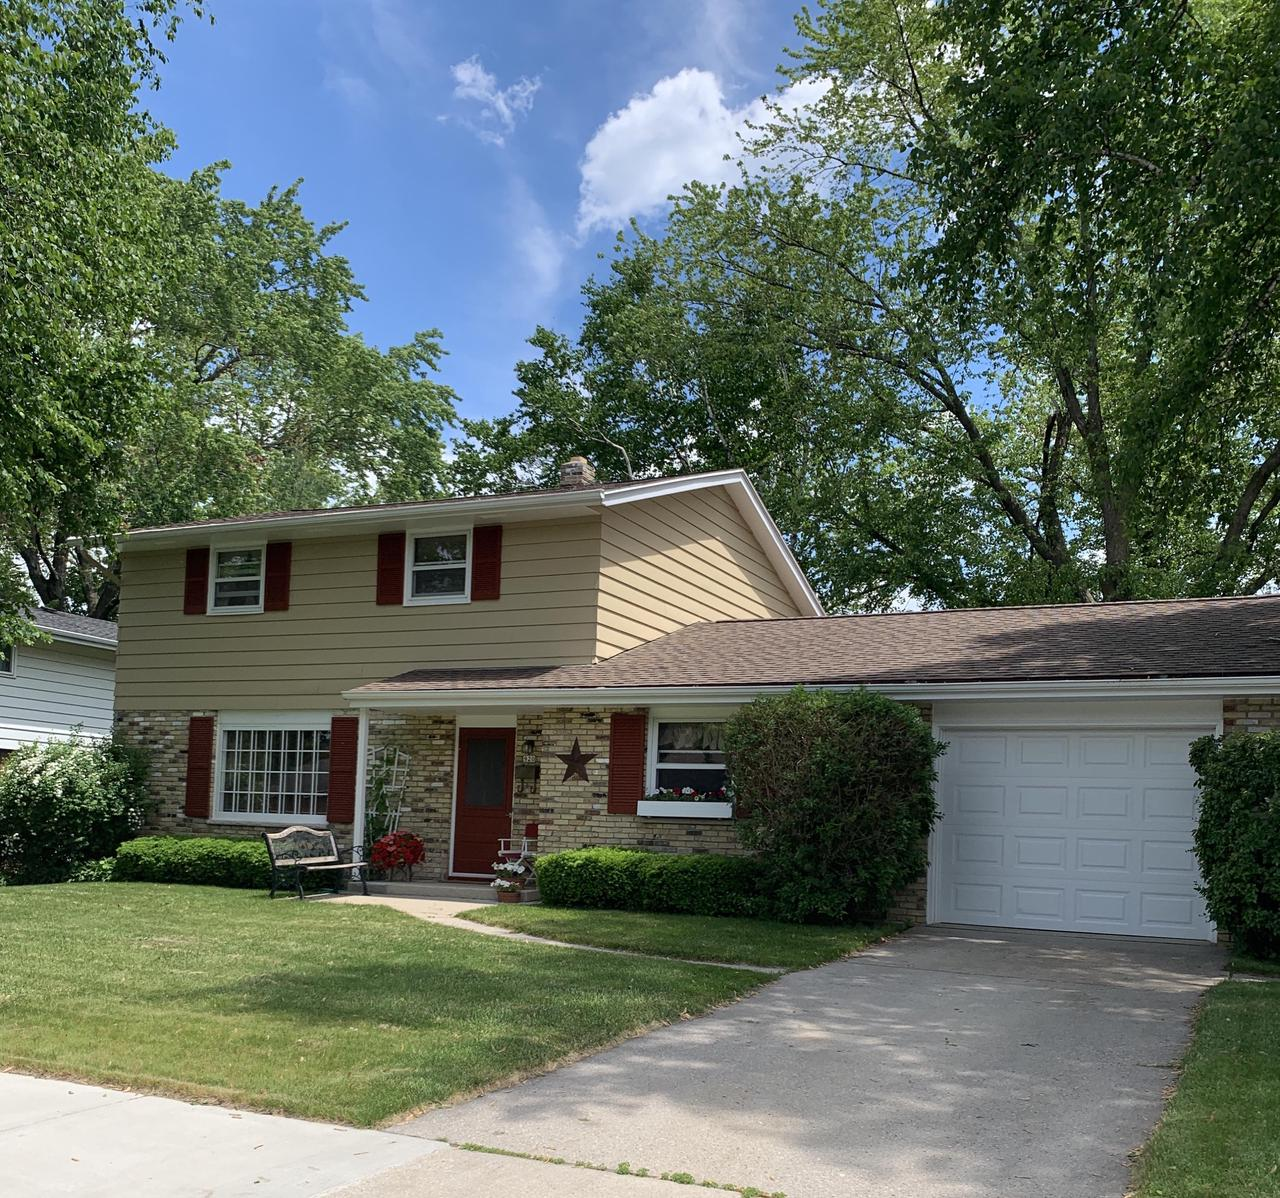 Pride of ownership shows in this beautiful home. Fantastic 4 bedroom, 2 story classic. Living/dining ''L''. Eat in kitchen. Original hardwood floors in upstairs bedrooms. Fabulous 3 season sunroom to enjoy the backyard views. Finished rec room in the lower level. Newer roof and freshly painted exterior. Located on a quiet street close to everything Grafton has to offer. One owner has lovingly taken care of this gem! Now available to make it your home.